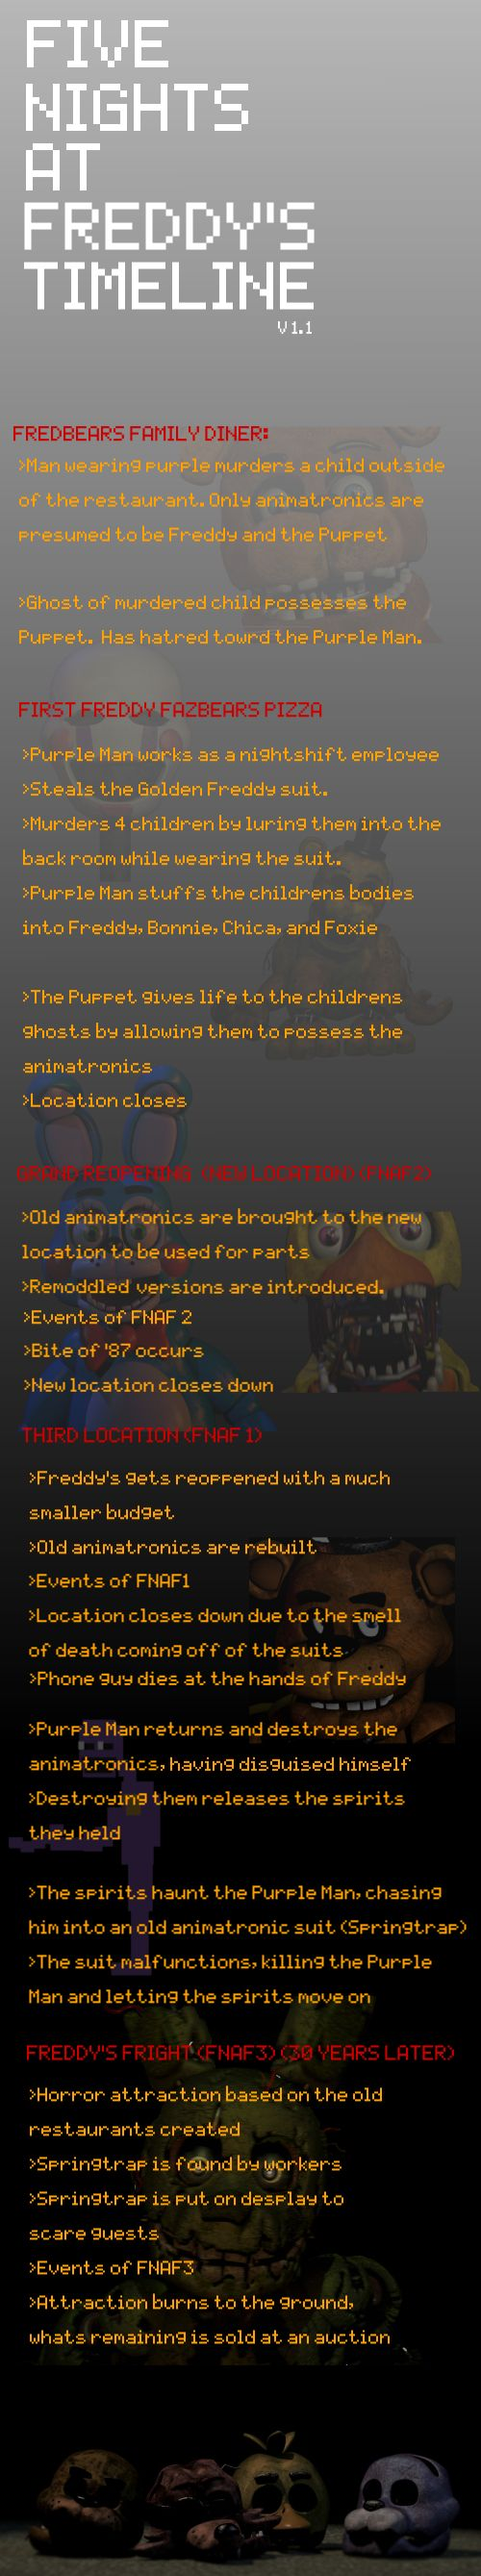 Five Nights at Freddy's Timeline. We fucking needed that #gaming #theories